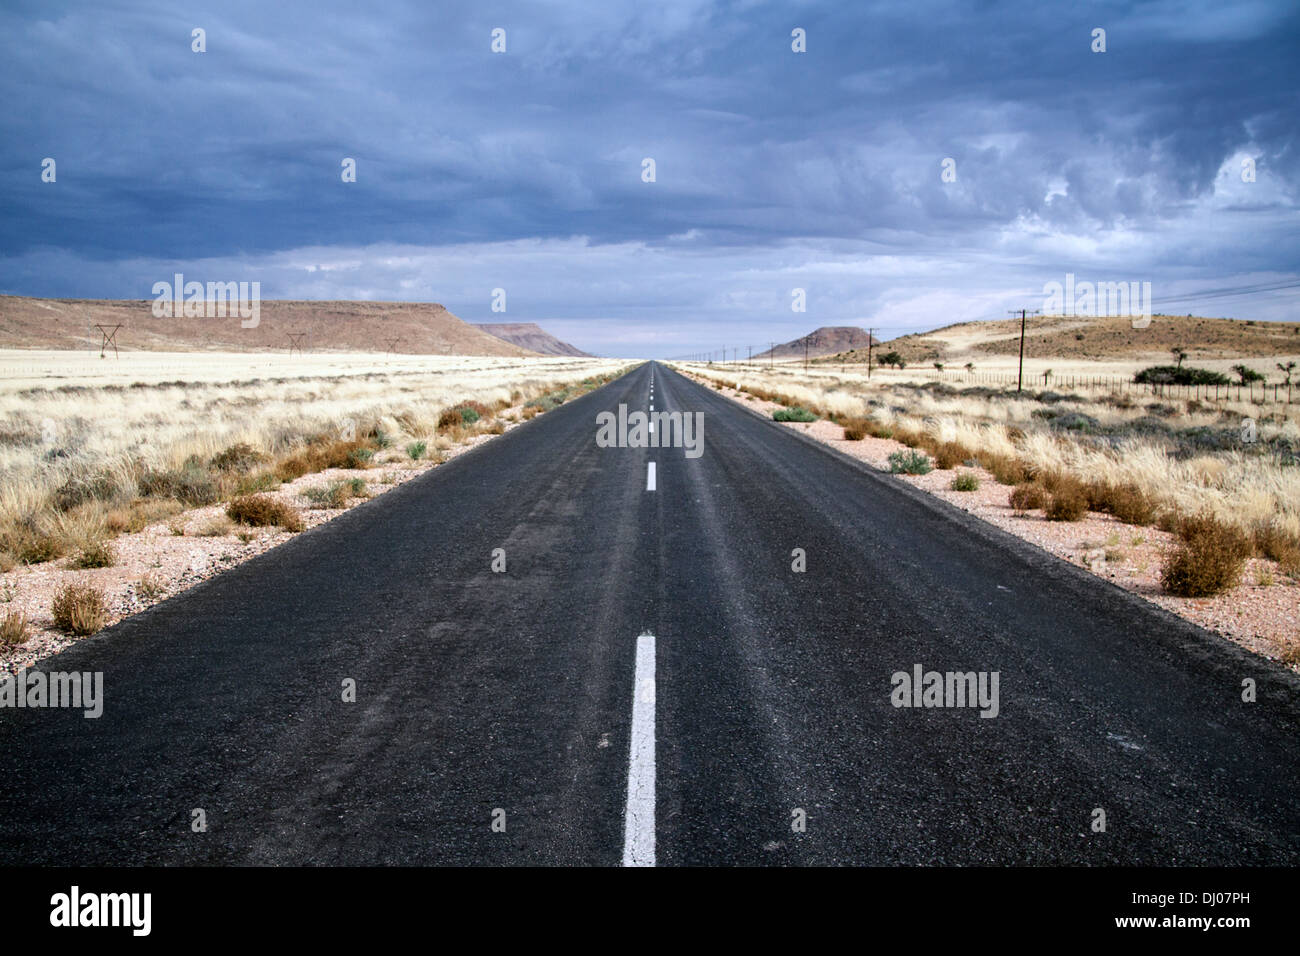 Long deserted Highway - Stock Image